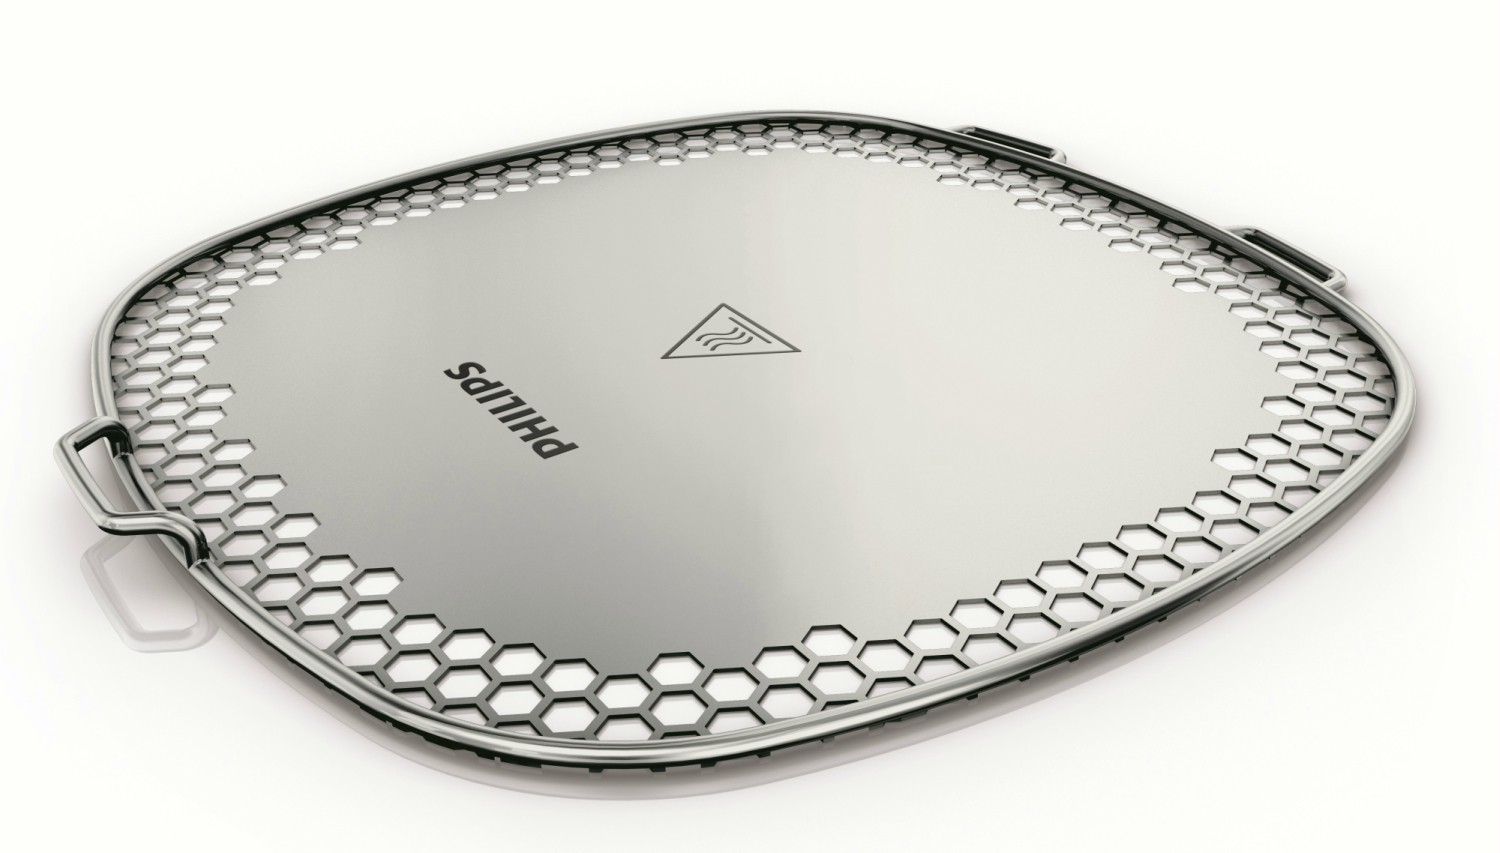 Airfryer Stainless Steel Splatter Proof Lid